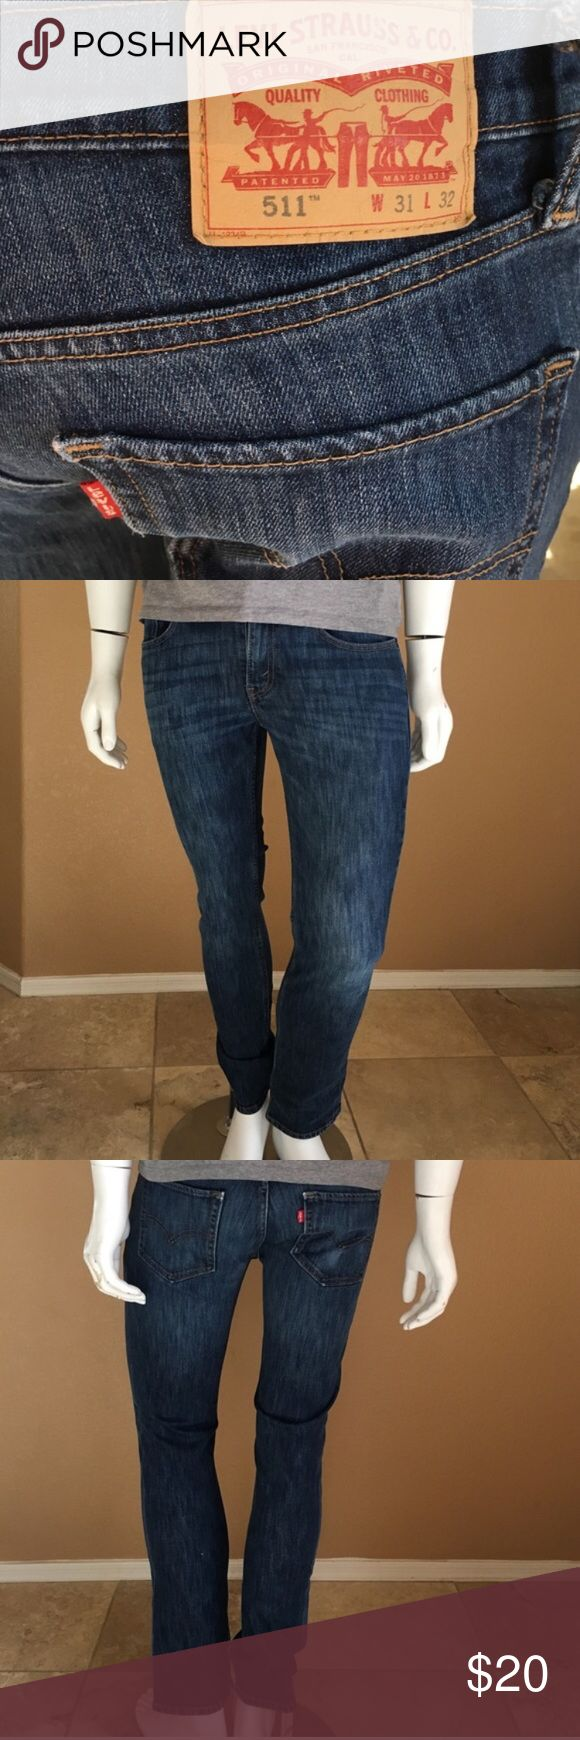 Men's 511 Jeans! 27. Men's 511 Skinny Dark Wash Levi Jeans! Size W:30, L: Inseam measures 30 inches, hemmed from original sizing. In excellent condition only worn a couple times! Levi's Jeans Skinny